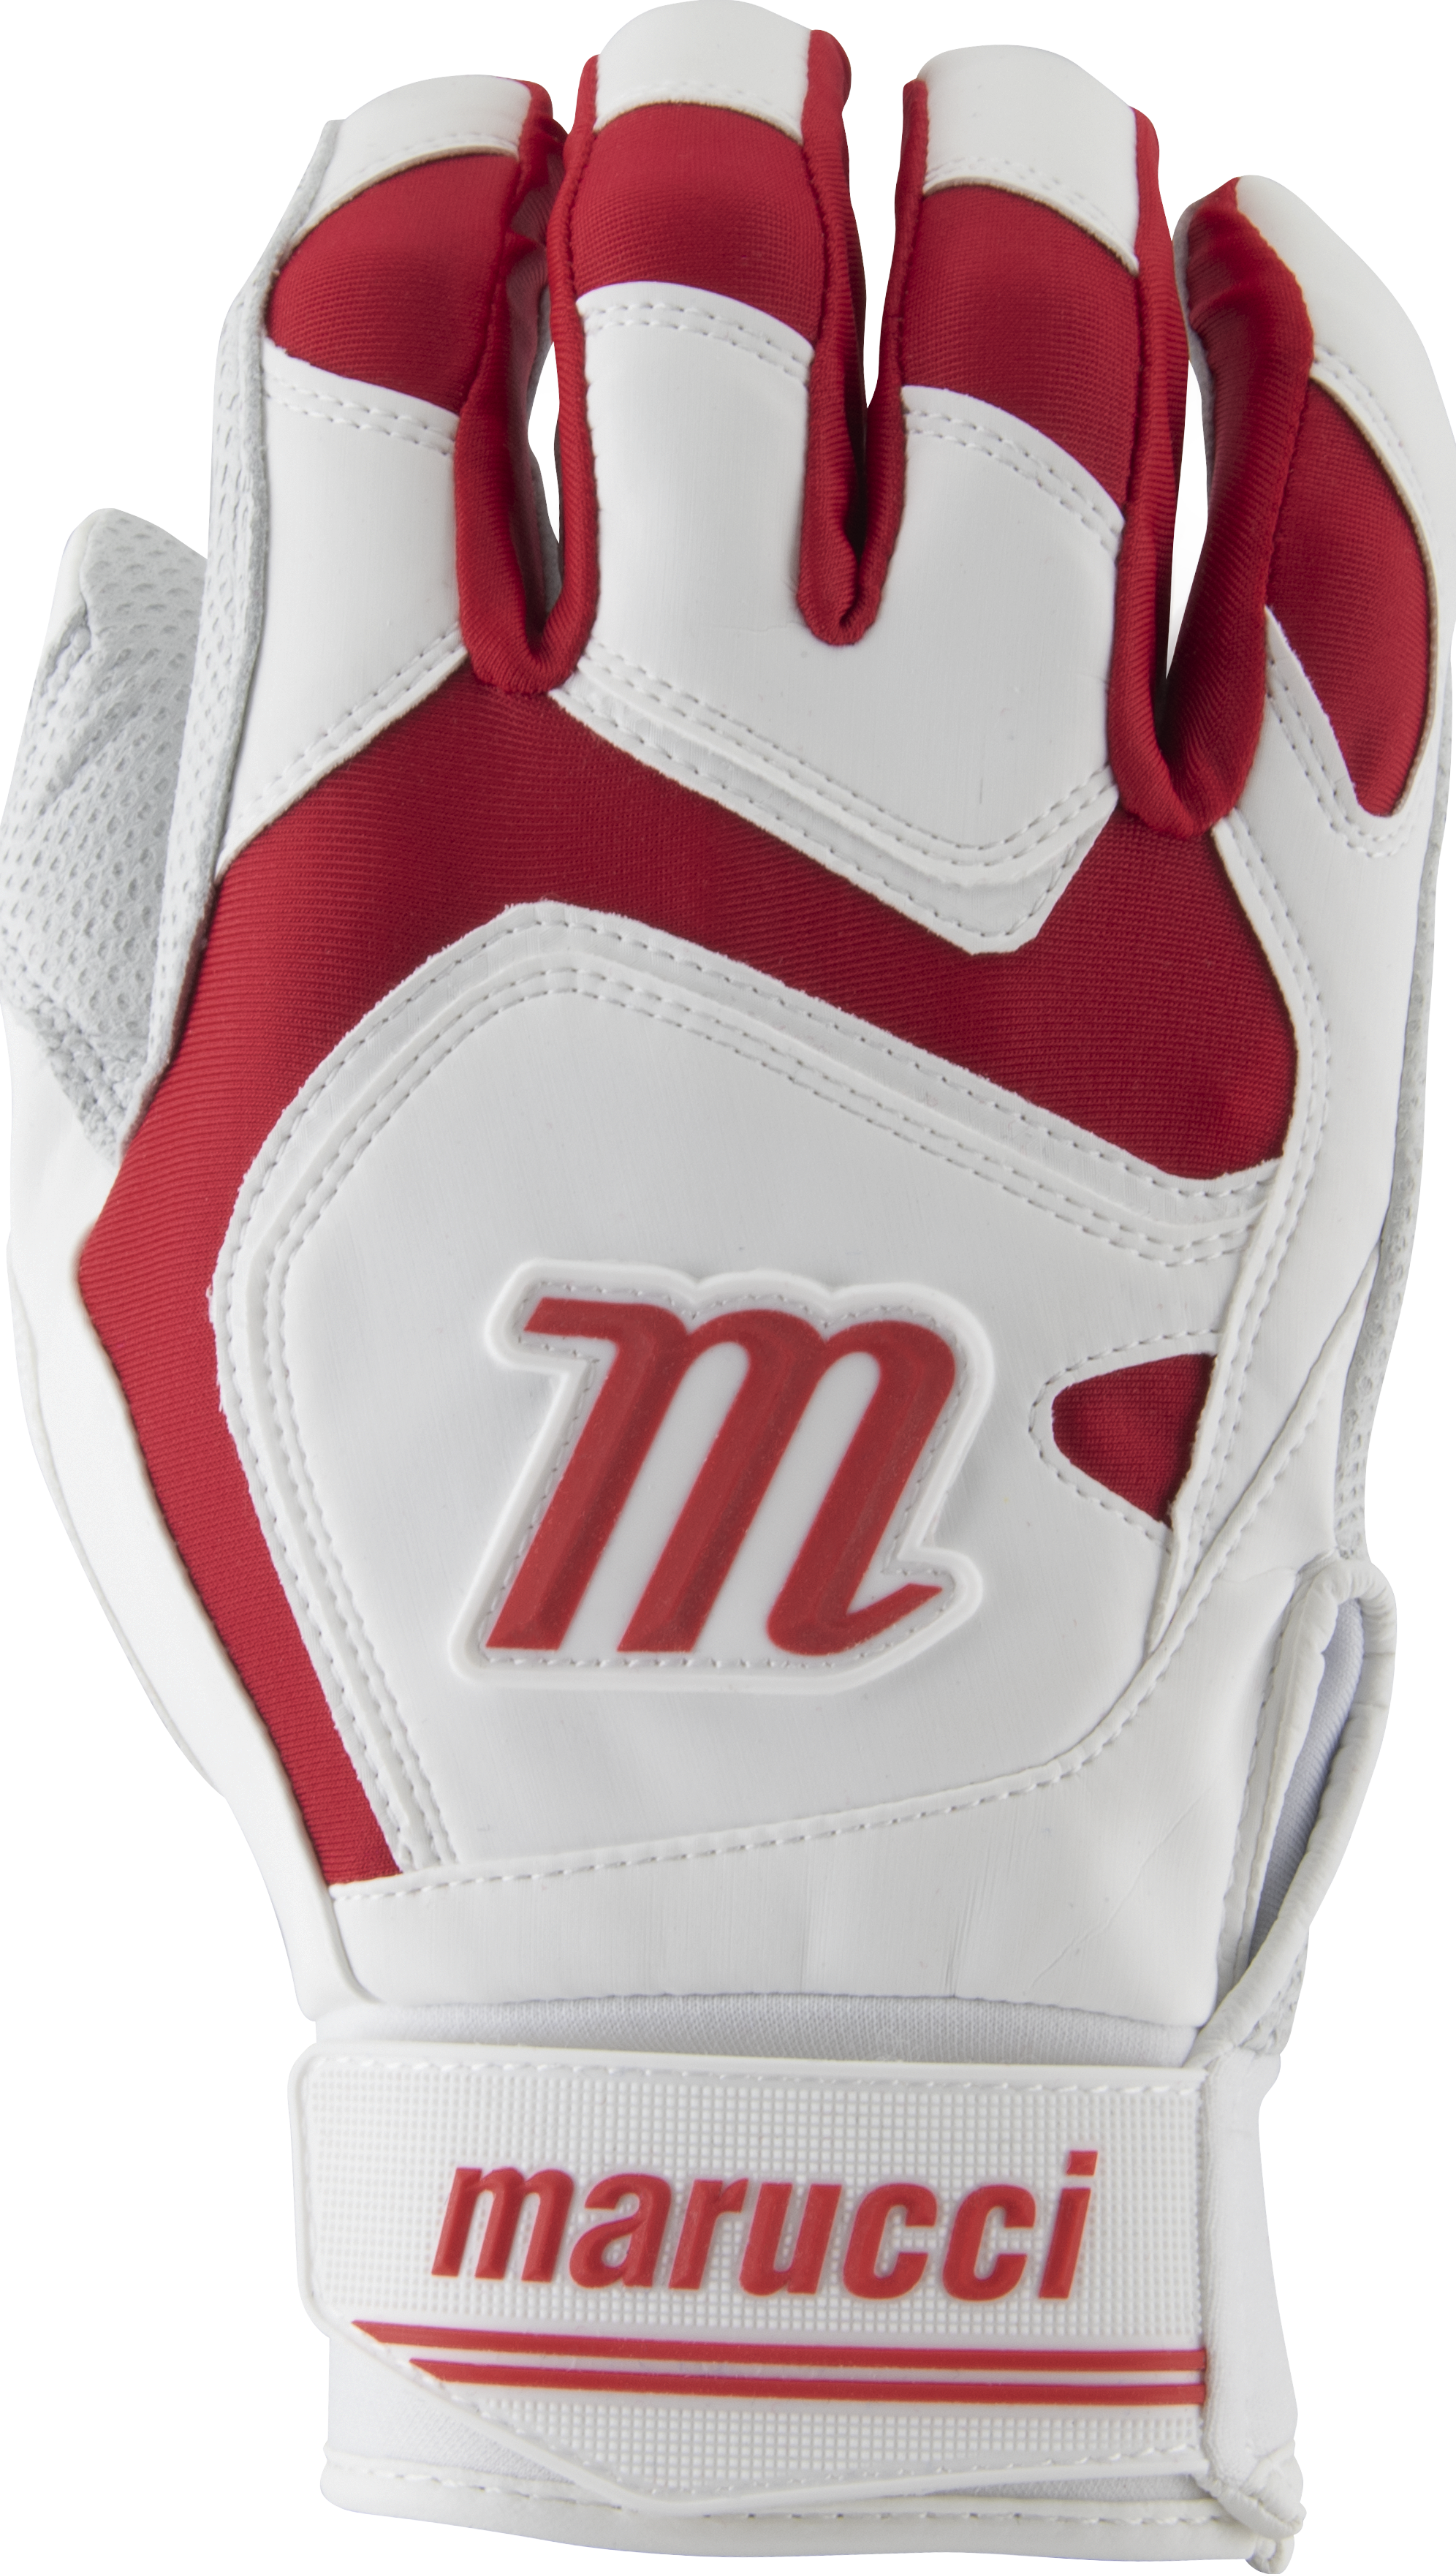 marucci-signature-batting-gloves-mbgsgn2-1-pair-white-red-adult-large MBGSGN2-WR-AL  849817096680 2019 Model MBGSGN2 Consistency And Craftsmanship Commitment To Quality And Understanding